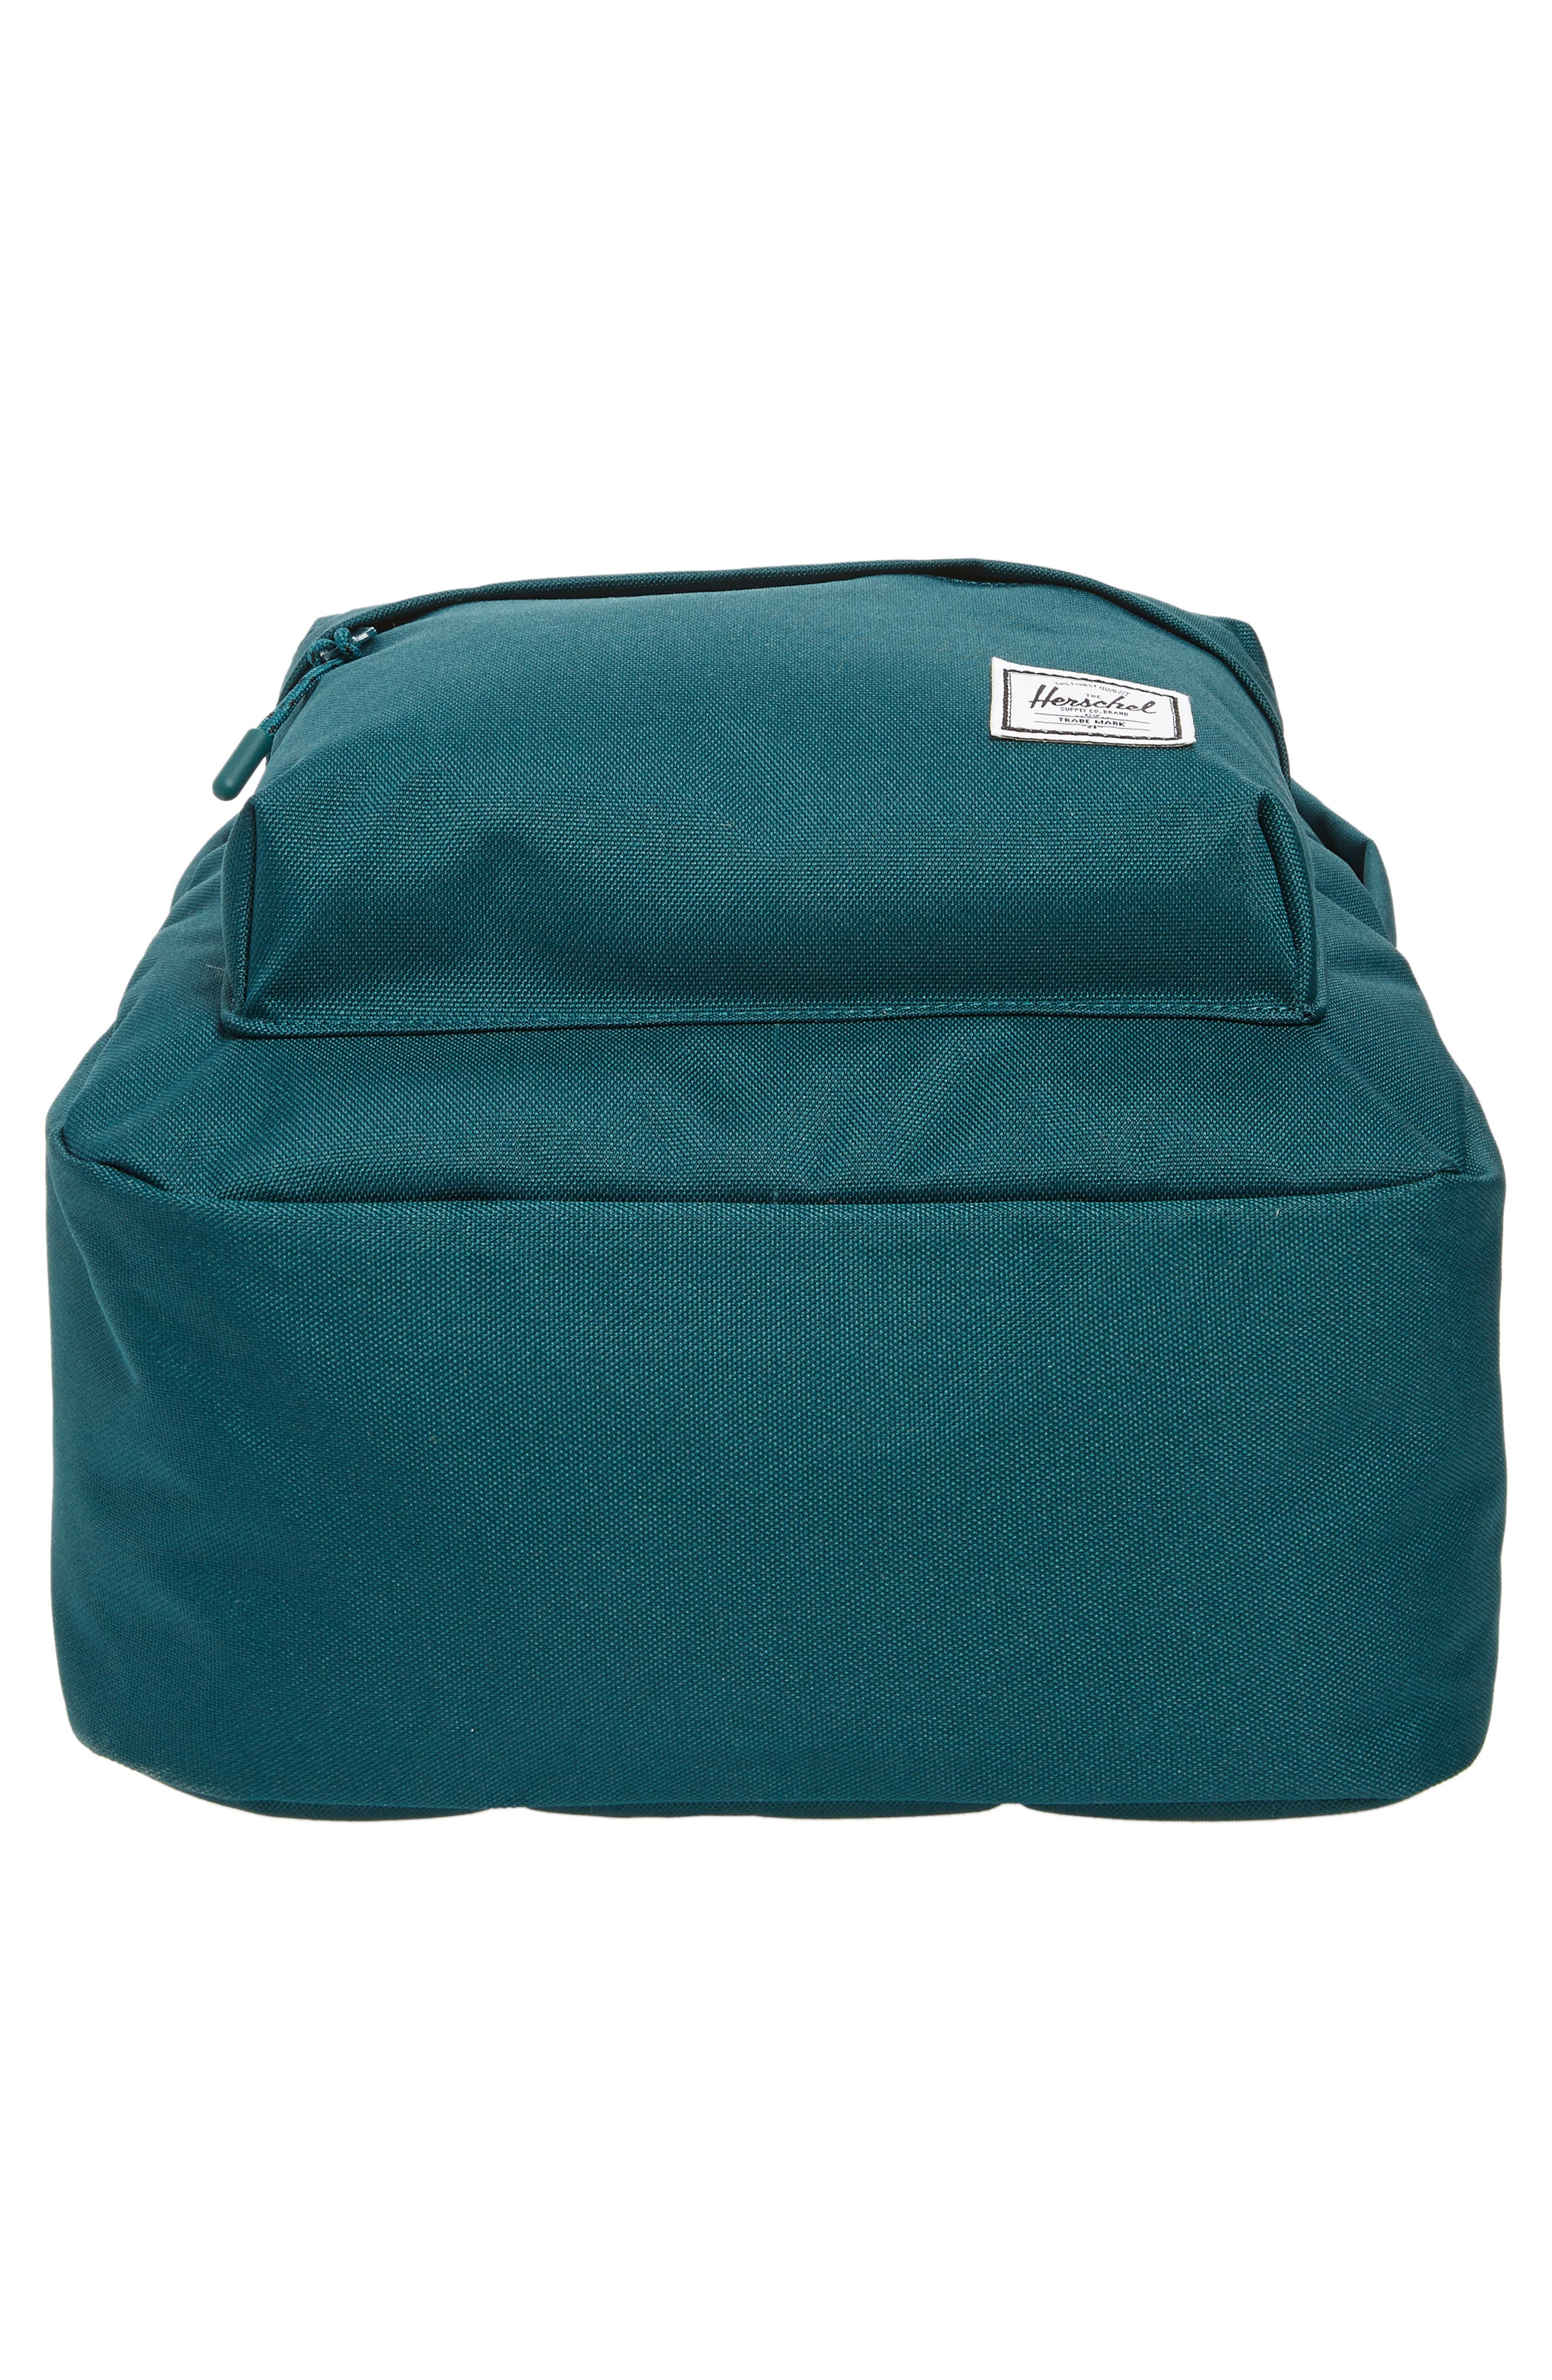 Classic Mid Volume Backpack,                             Alternate thumbnail 6, color,                             DEEP TEAL